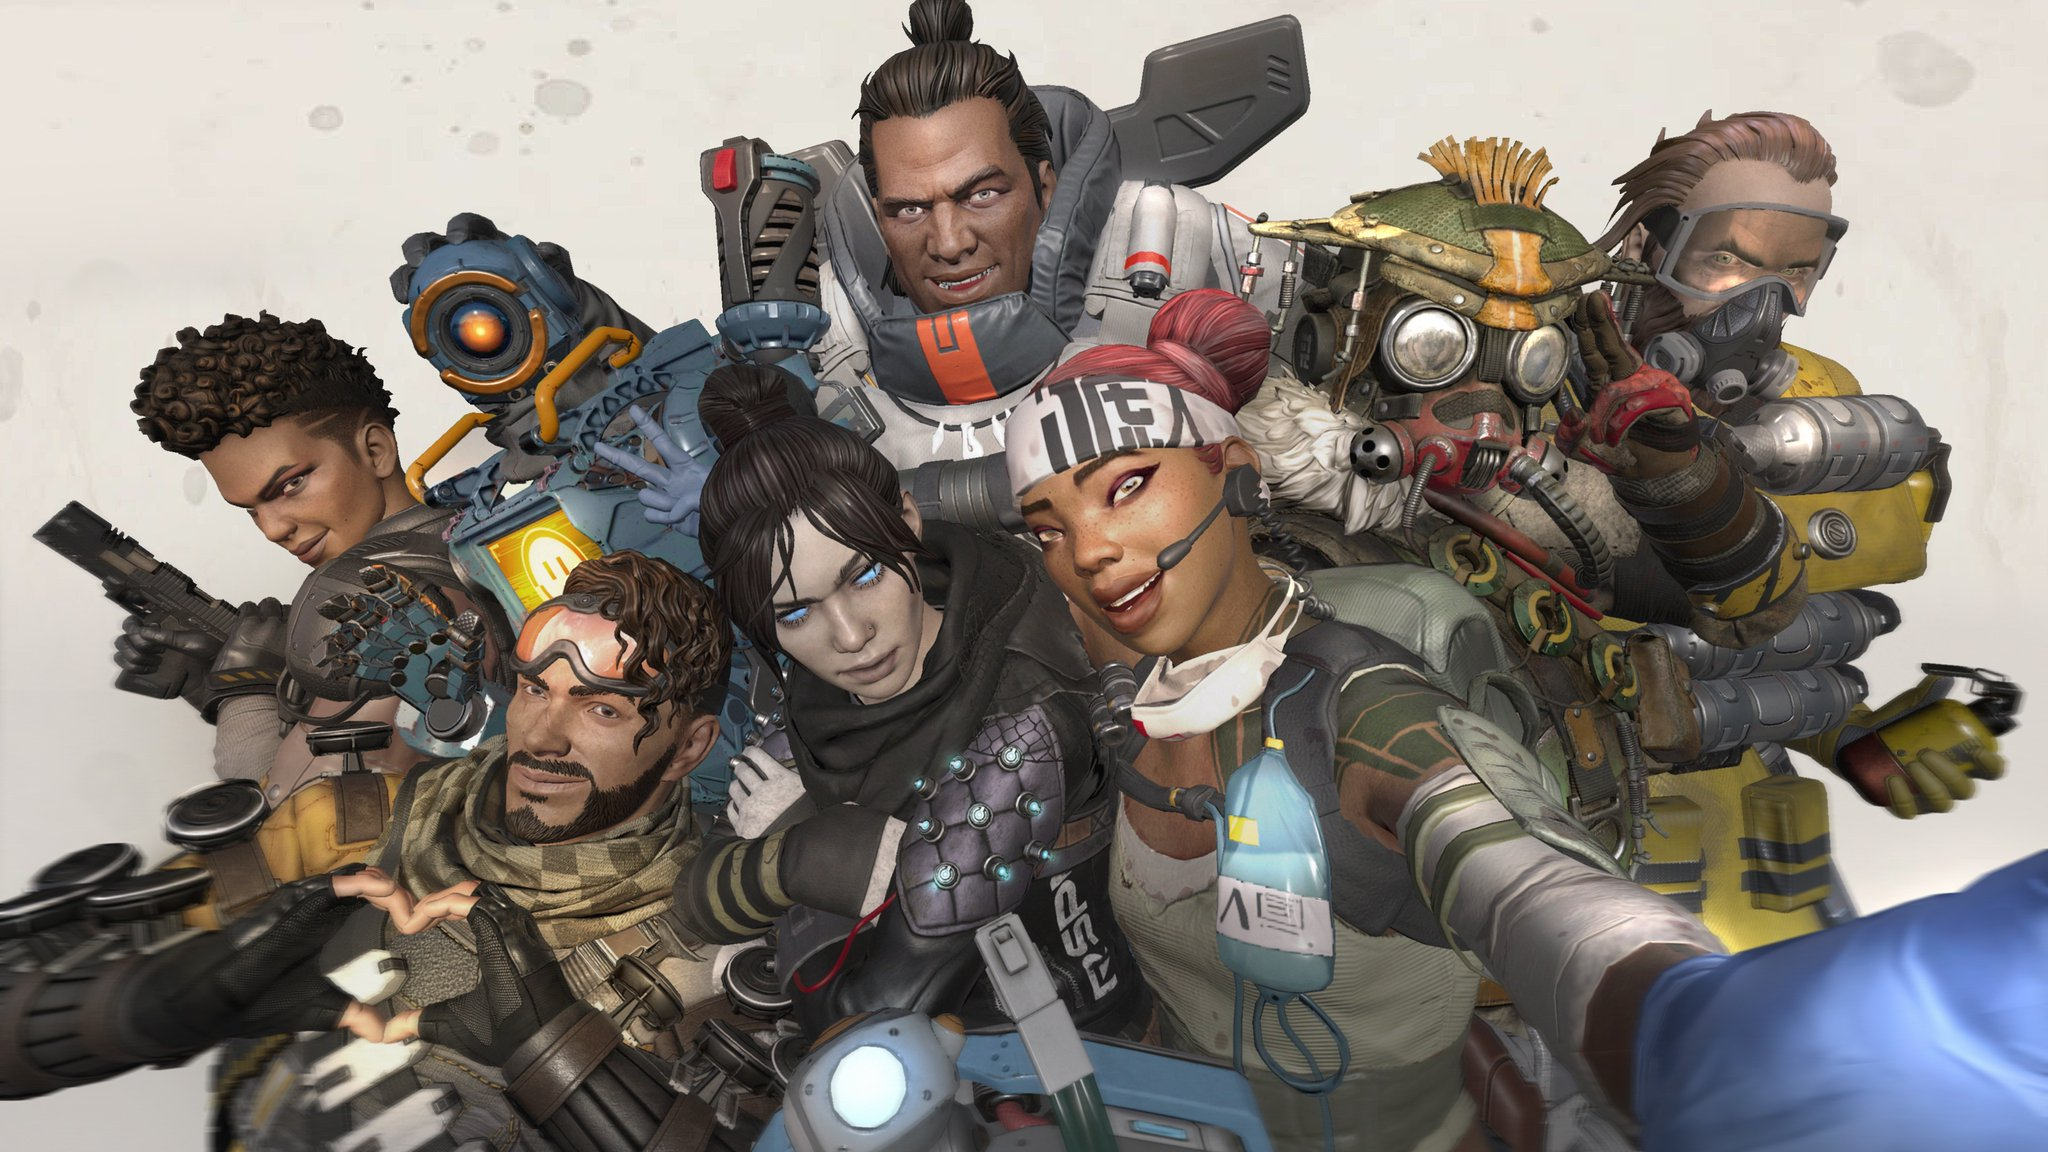 0️⃣1️⃣APEX LEGENDS from 100 LVL ❤️ [ORIGIN]